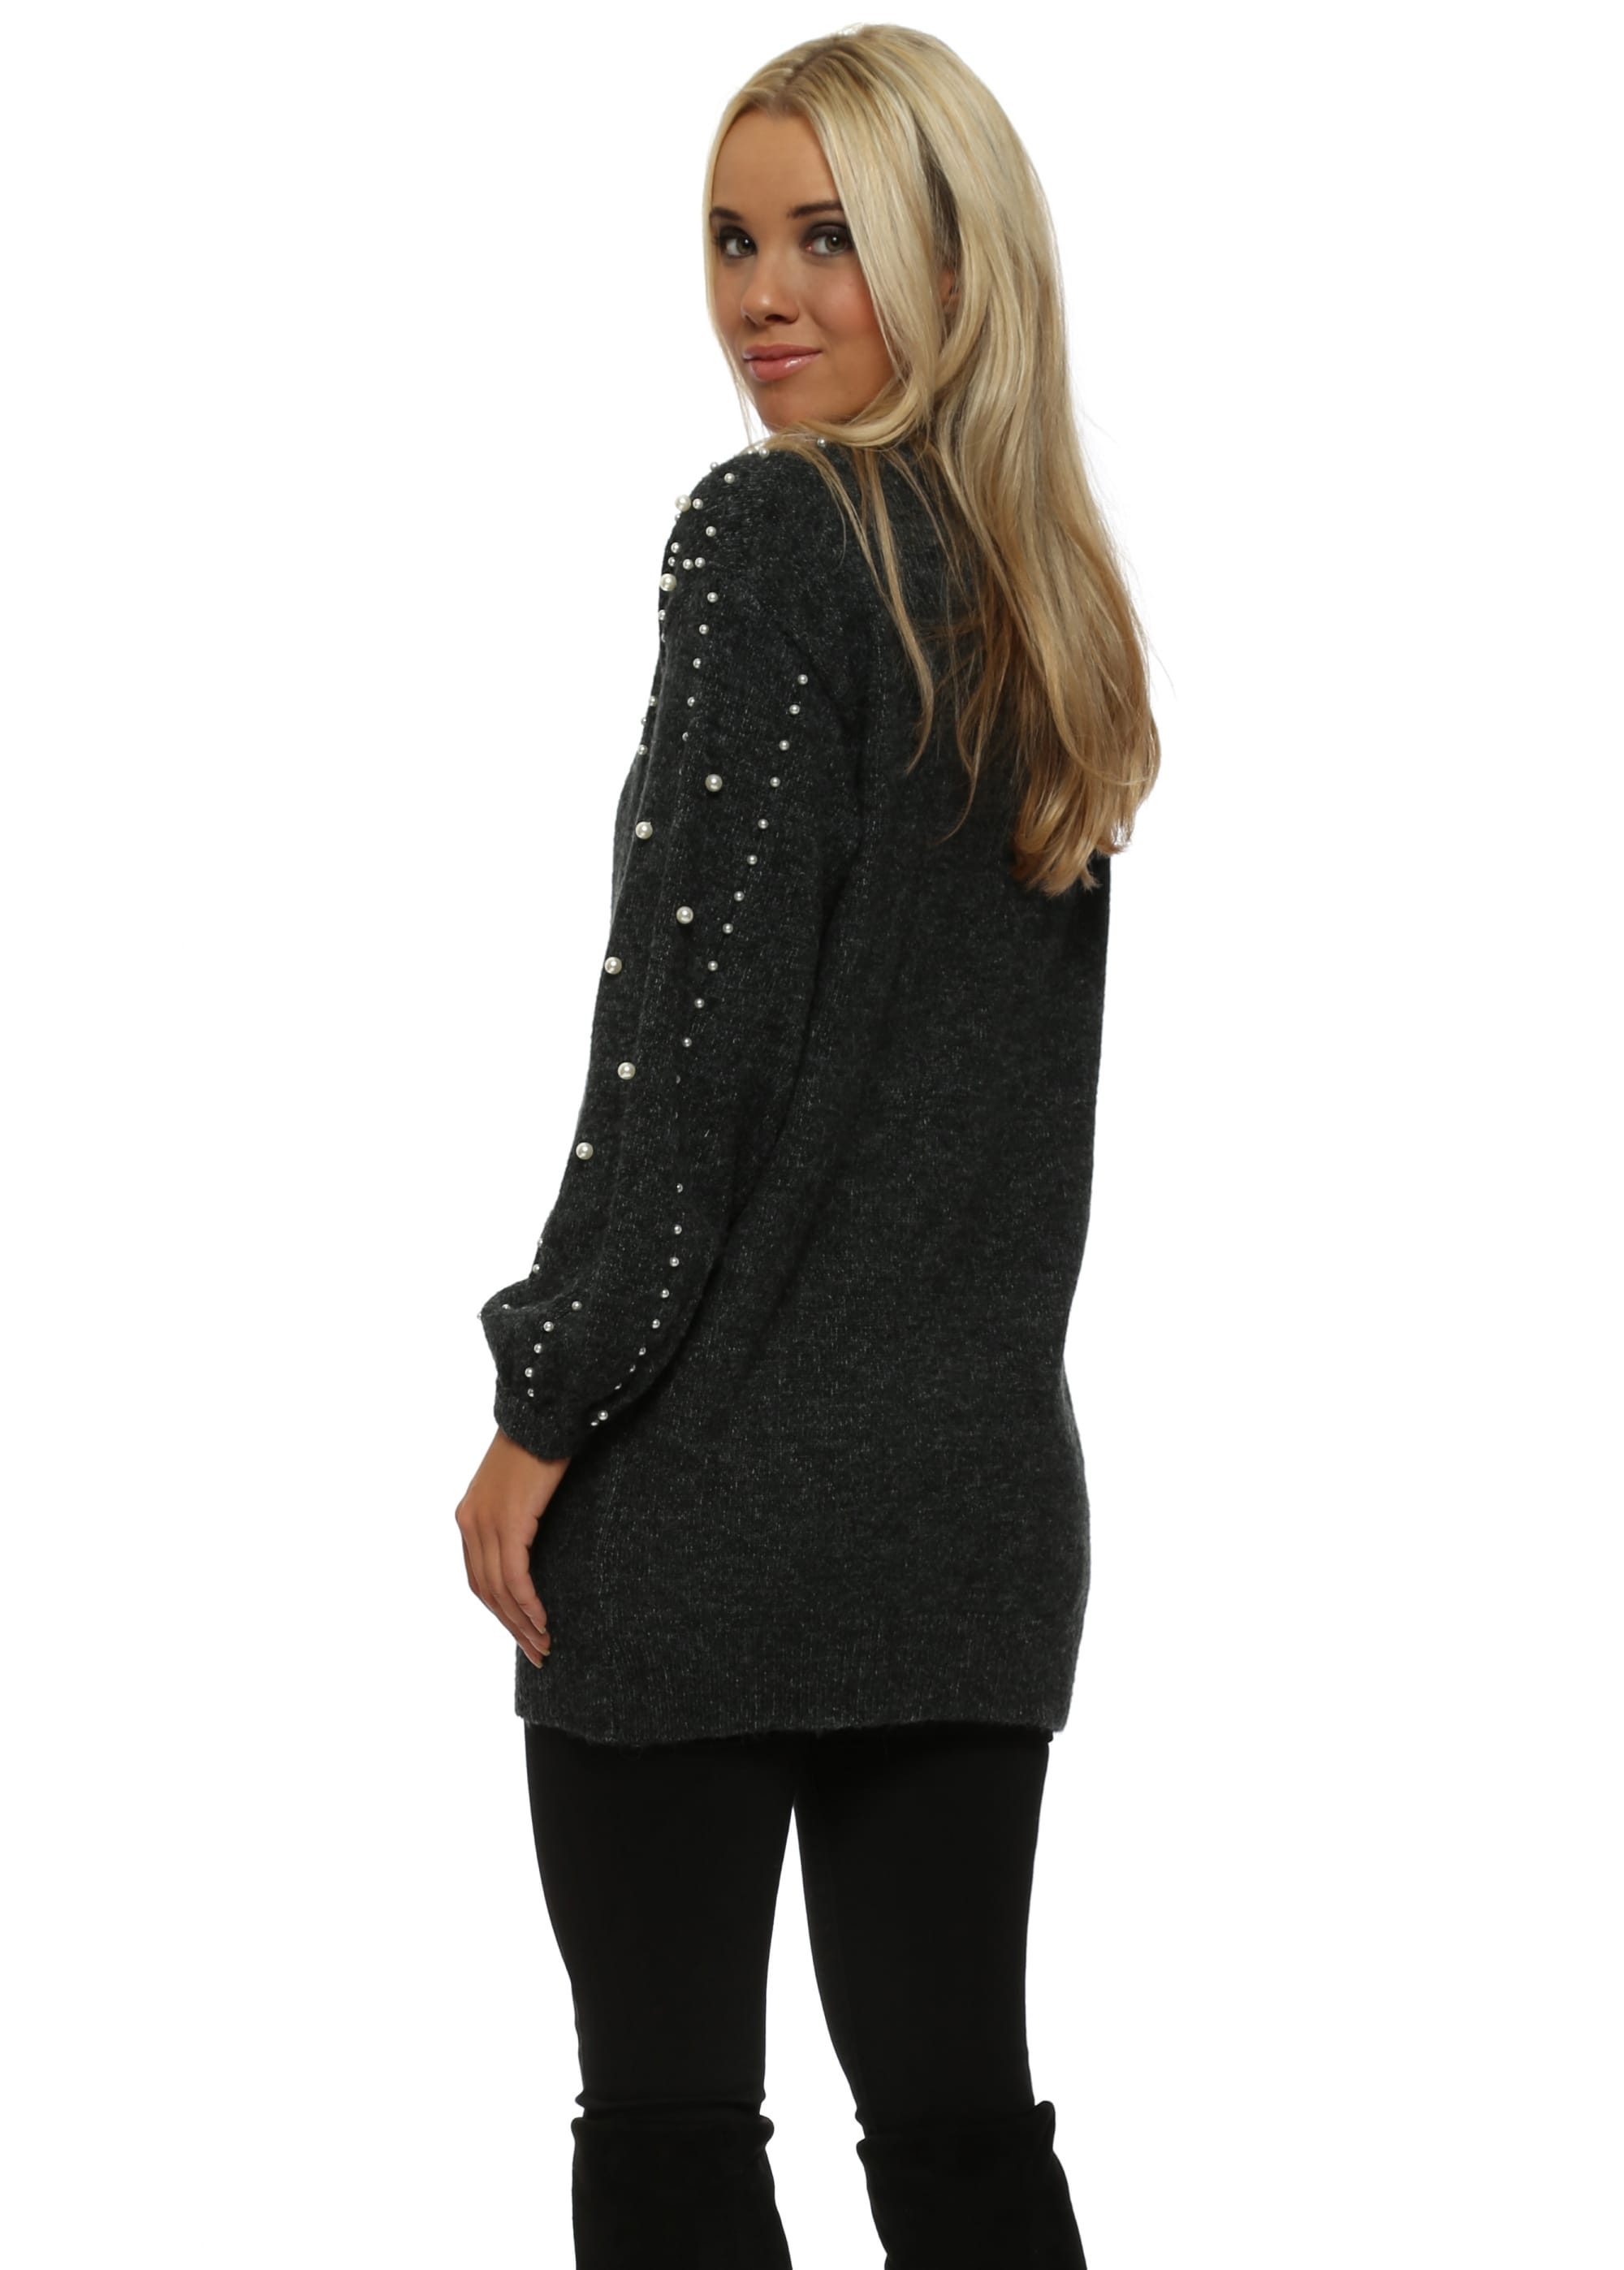 a3875132b60 Dark Grey Pearl Embellished Knitted Jumper Dress